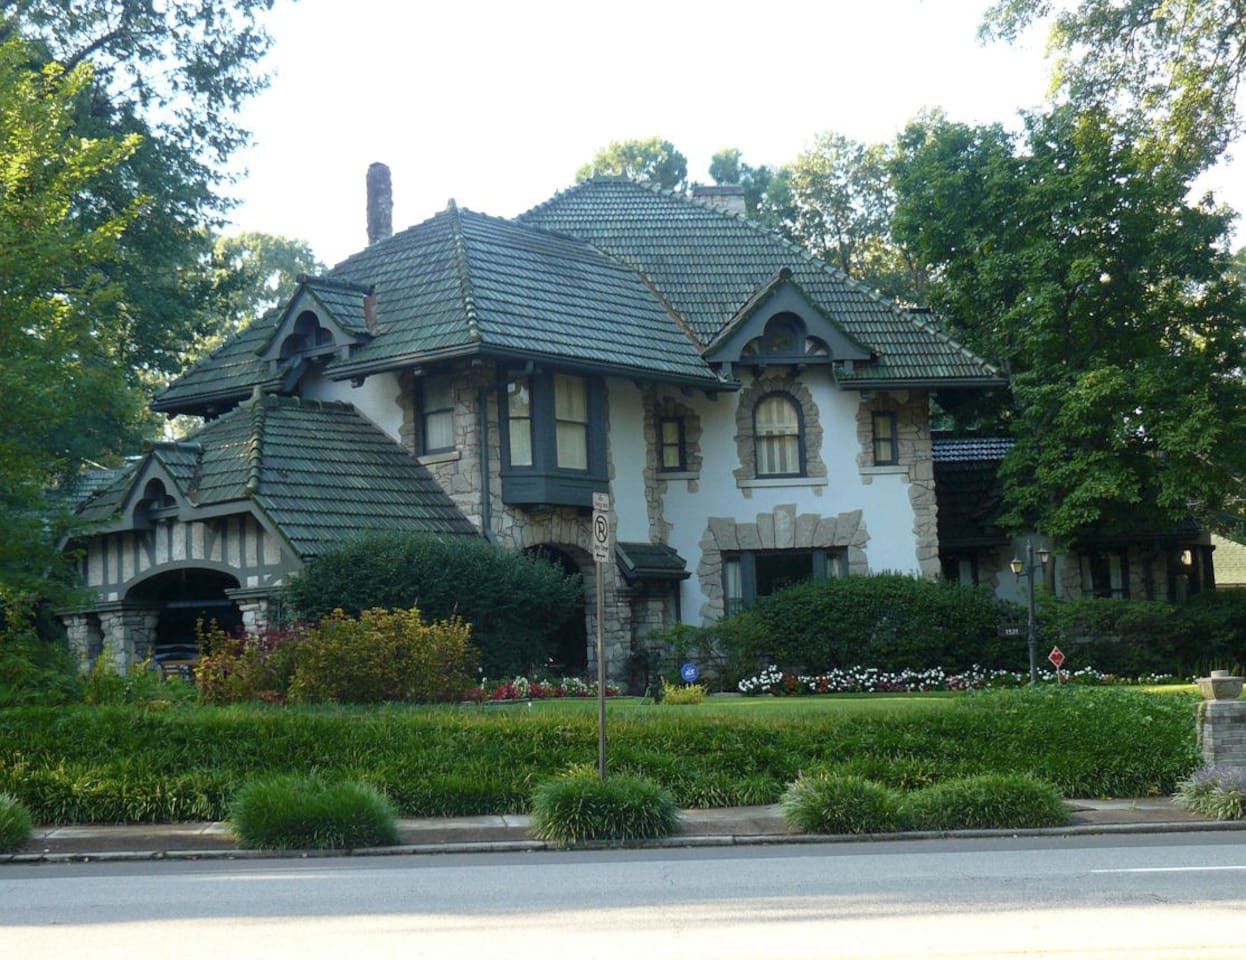 Main House - The Carriage House is located behind the main house at the end of the driveway.